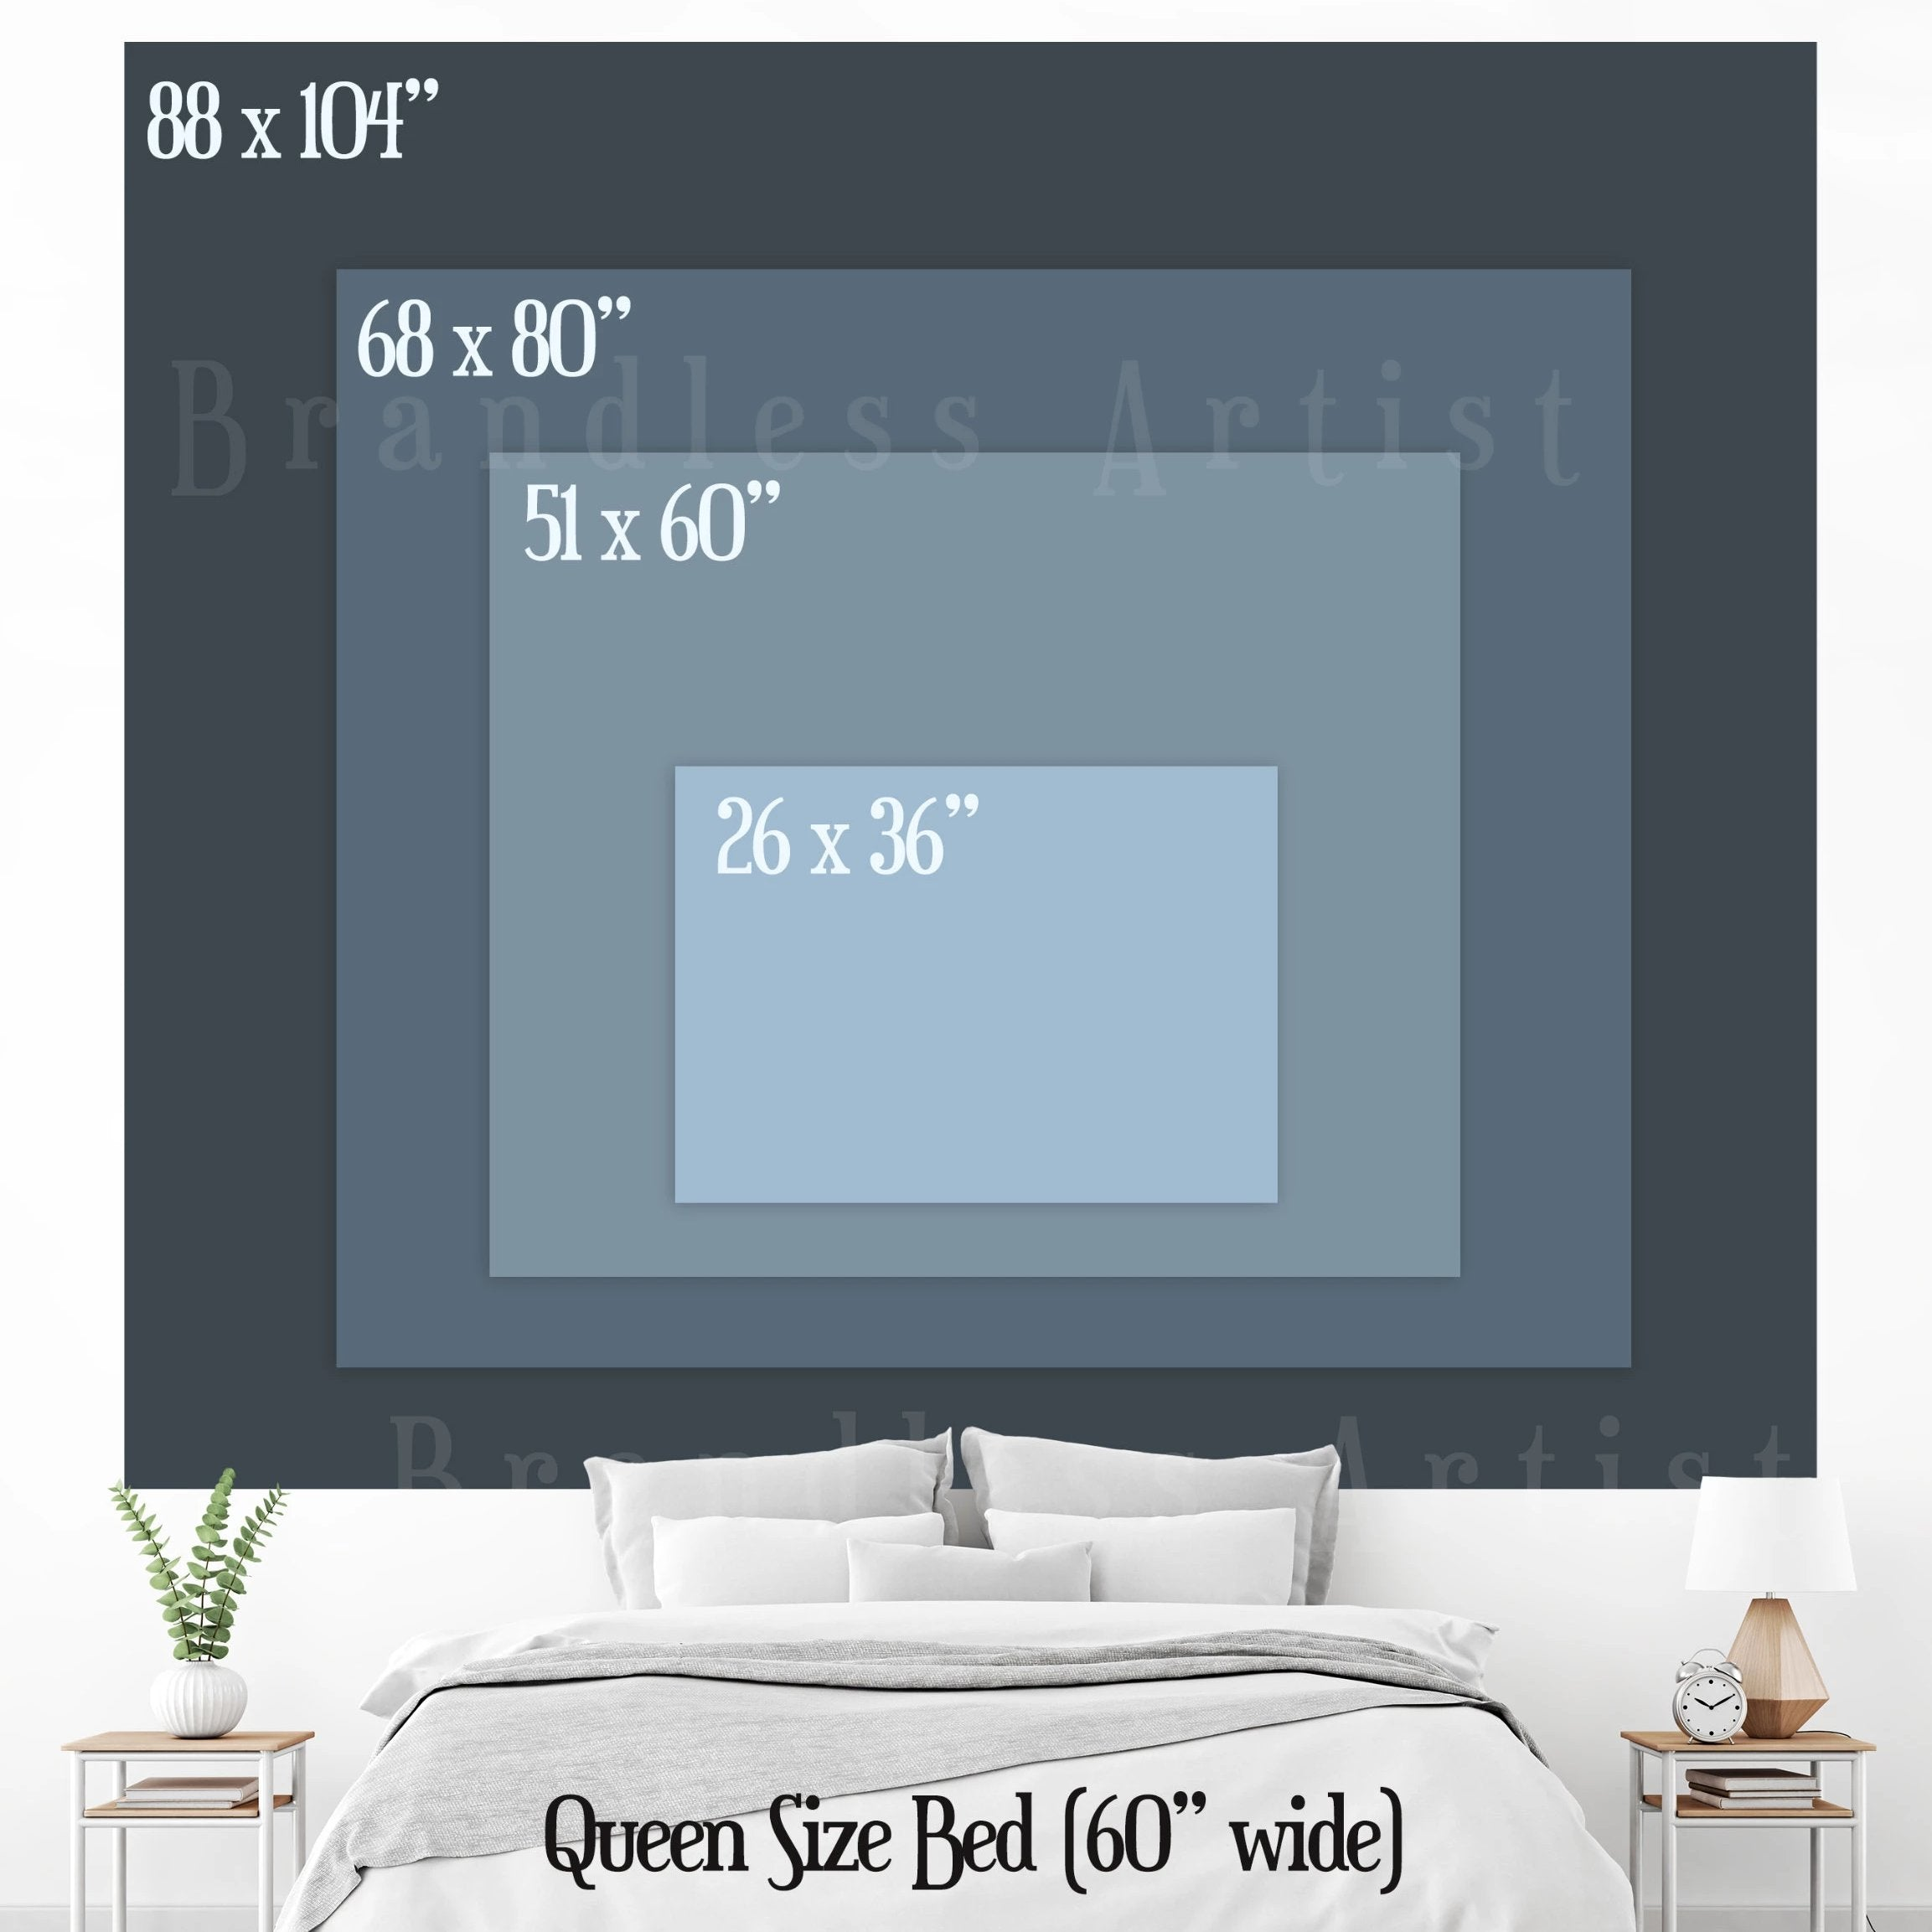 Wanderlust Tapestry Sizes - Brandless Artist